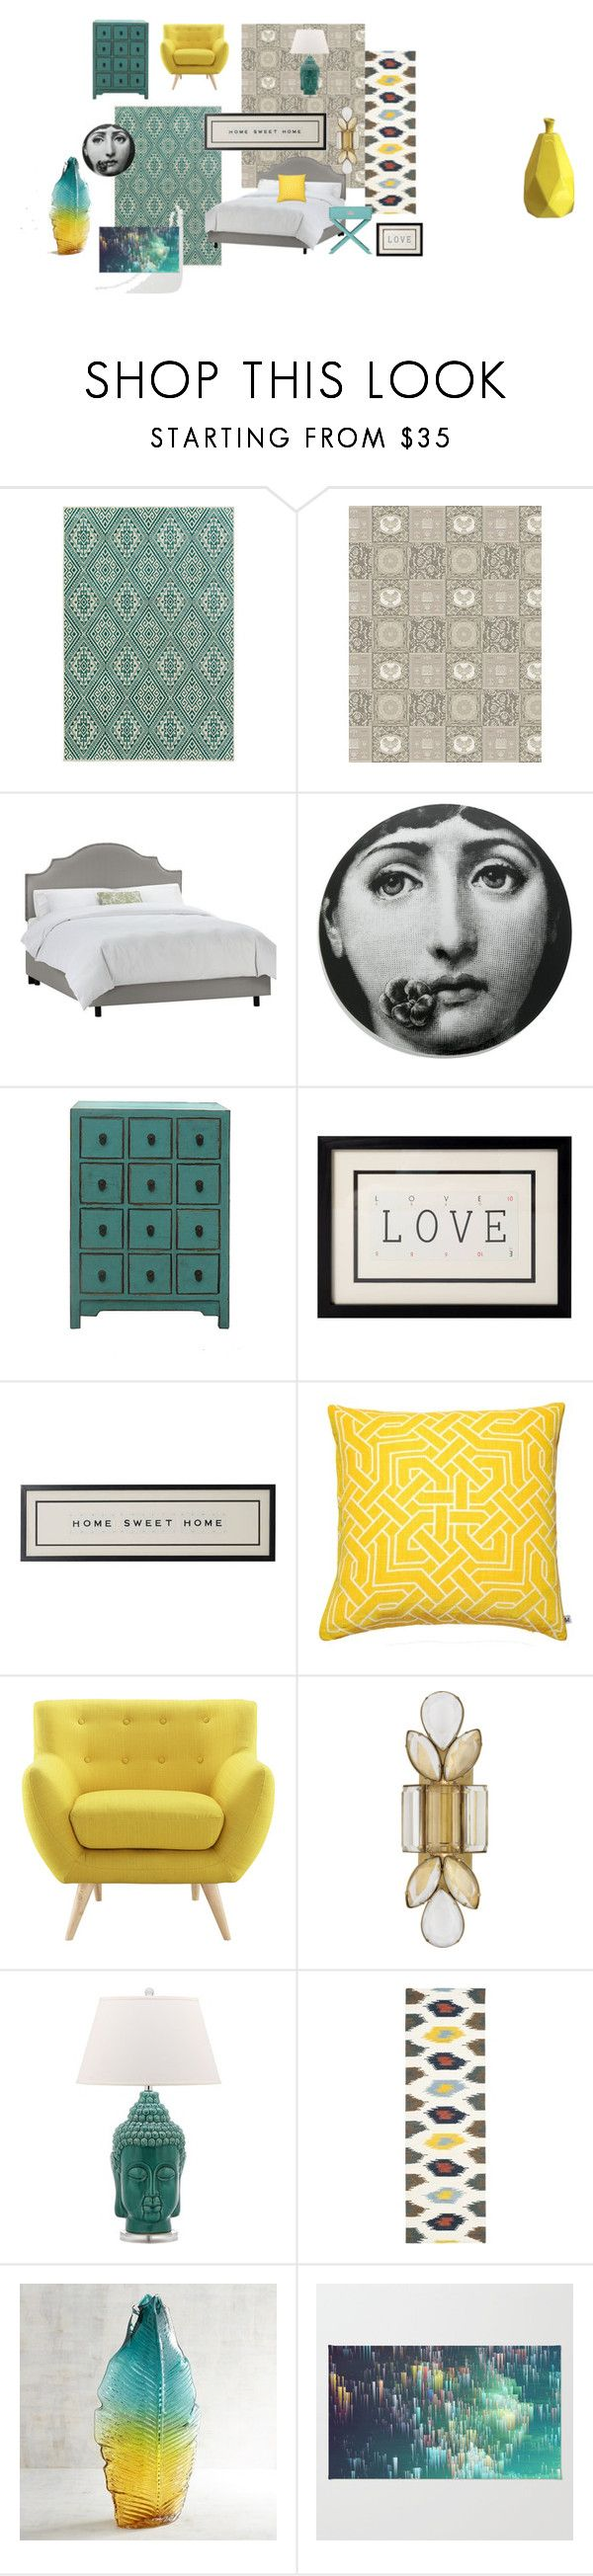 """Aqua Sunshine Bedroom"" by veronatheunissen on Polyvore featuring interior, interiors, interior design, home, home decor, interior decorating, Surya, Versace, Fornasetti and Nina Kullberg"